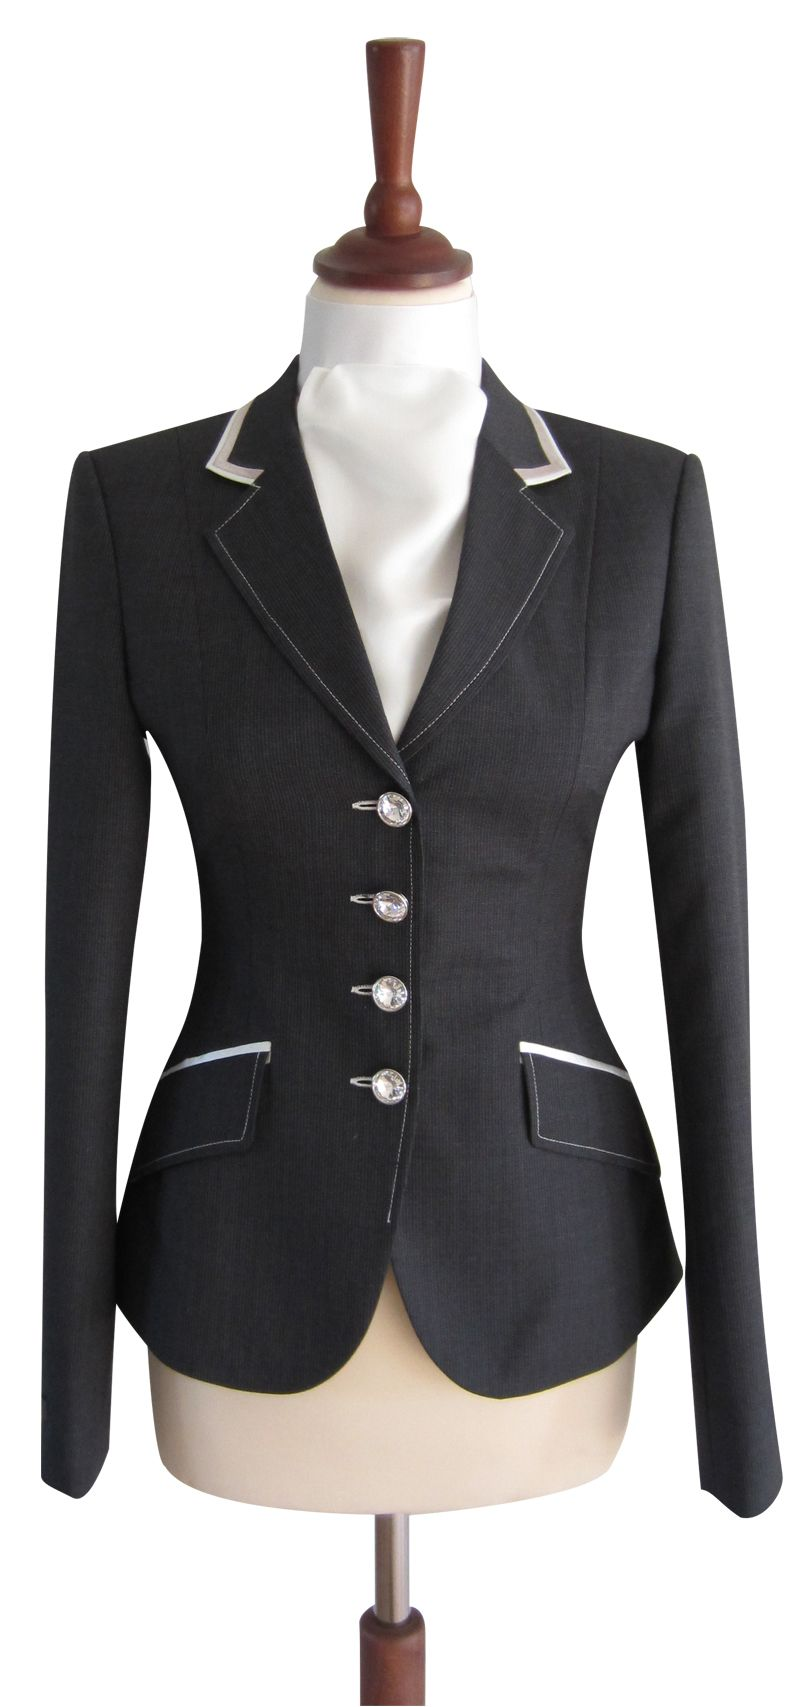 Pin By Emily Broadway On Vililiv By Juuls Horse Riding Jackets Equestrian Outfits Riding Jacket [ 1707 x 800 Pixel ]